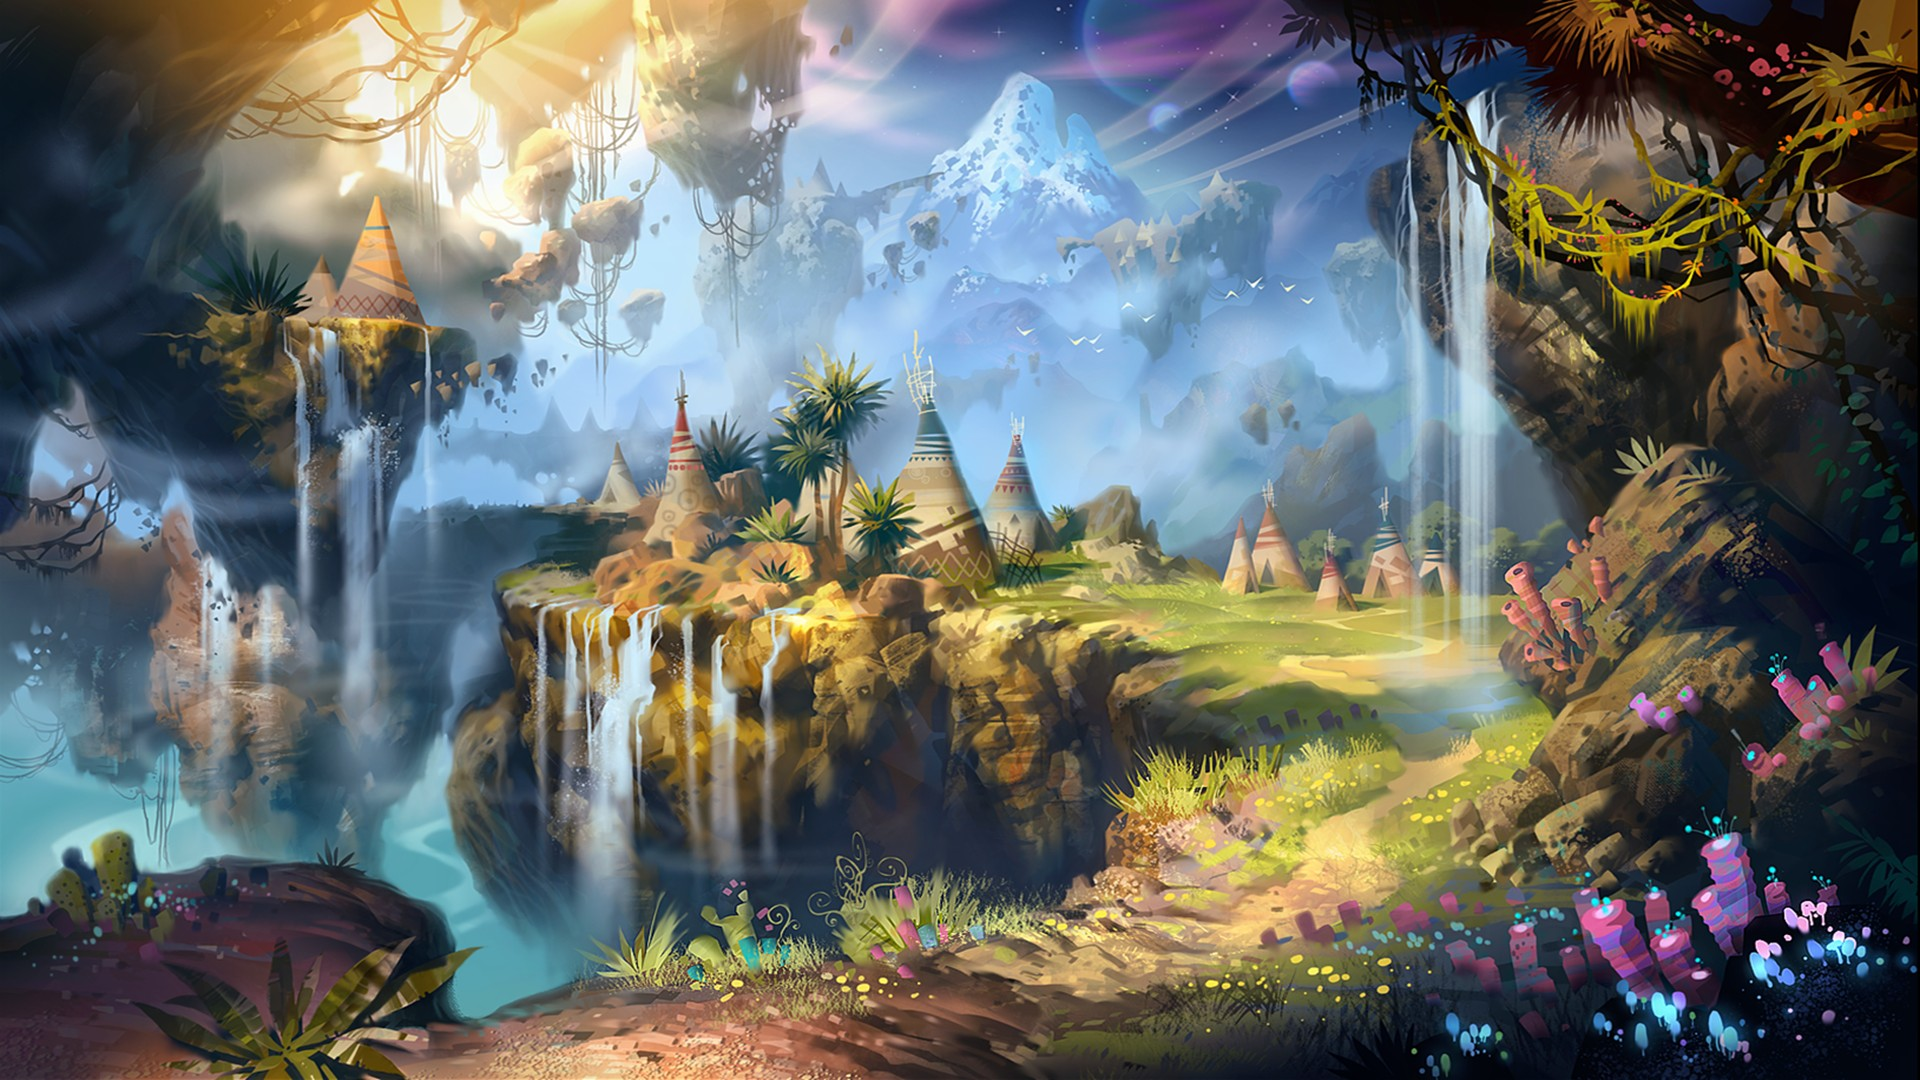 Image Detail For Fantasy Ipad Wallpaper: Fantasy Landscape Wallpaper 1920x1080 ·① Download Free